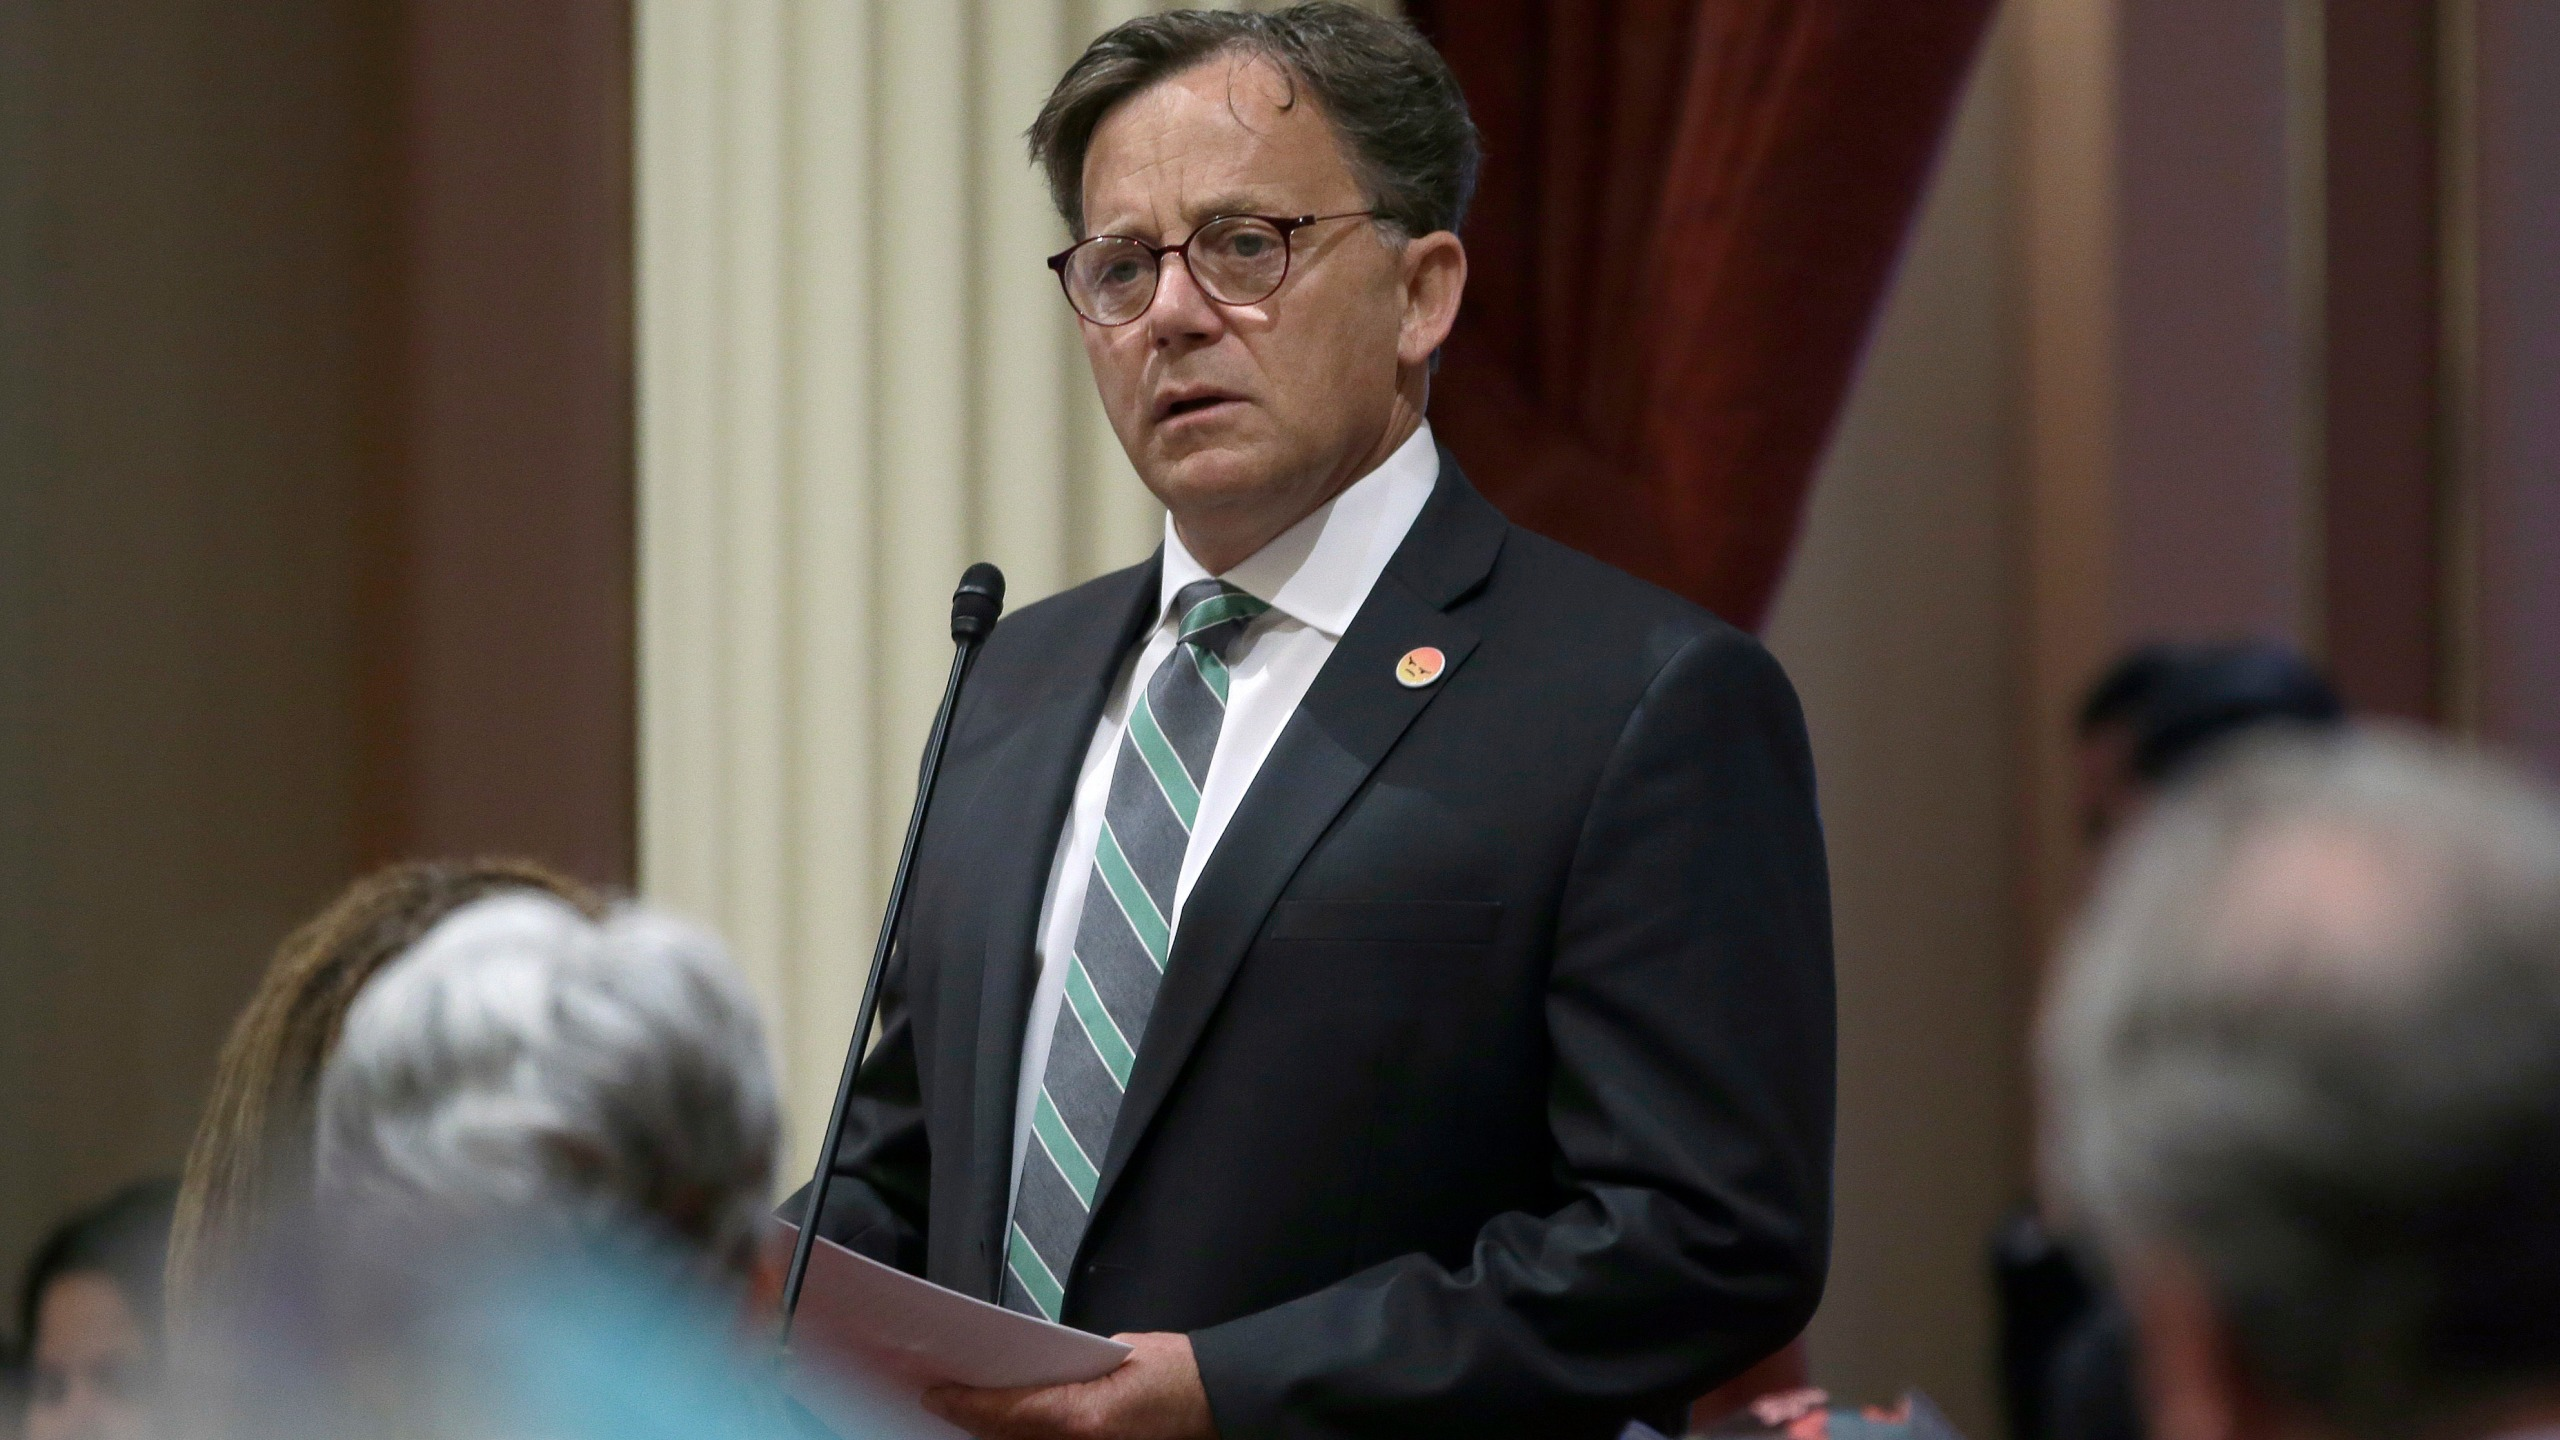 In this June 11, 2018, file photo, state Sen. Josh Newman, D-Fullerton, discusses the recall election against him, during a Senate session in Sacramento, Calif. Newman was recalled in 2018 before winning re-election in 2020. He presented new legislation on Monday, April 12, 2021, that would allow politicians facing recalls to see who signs the petitions against them. (AP Photo/Rich Pedroncelli, File)